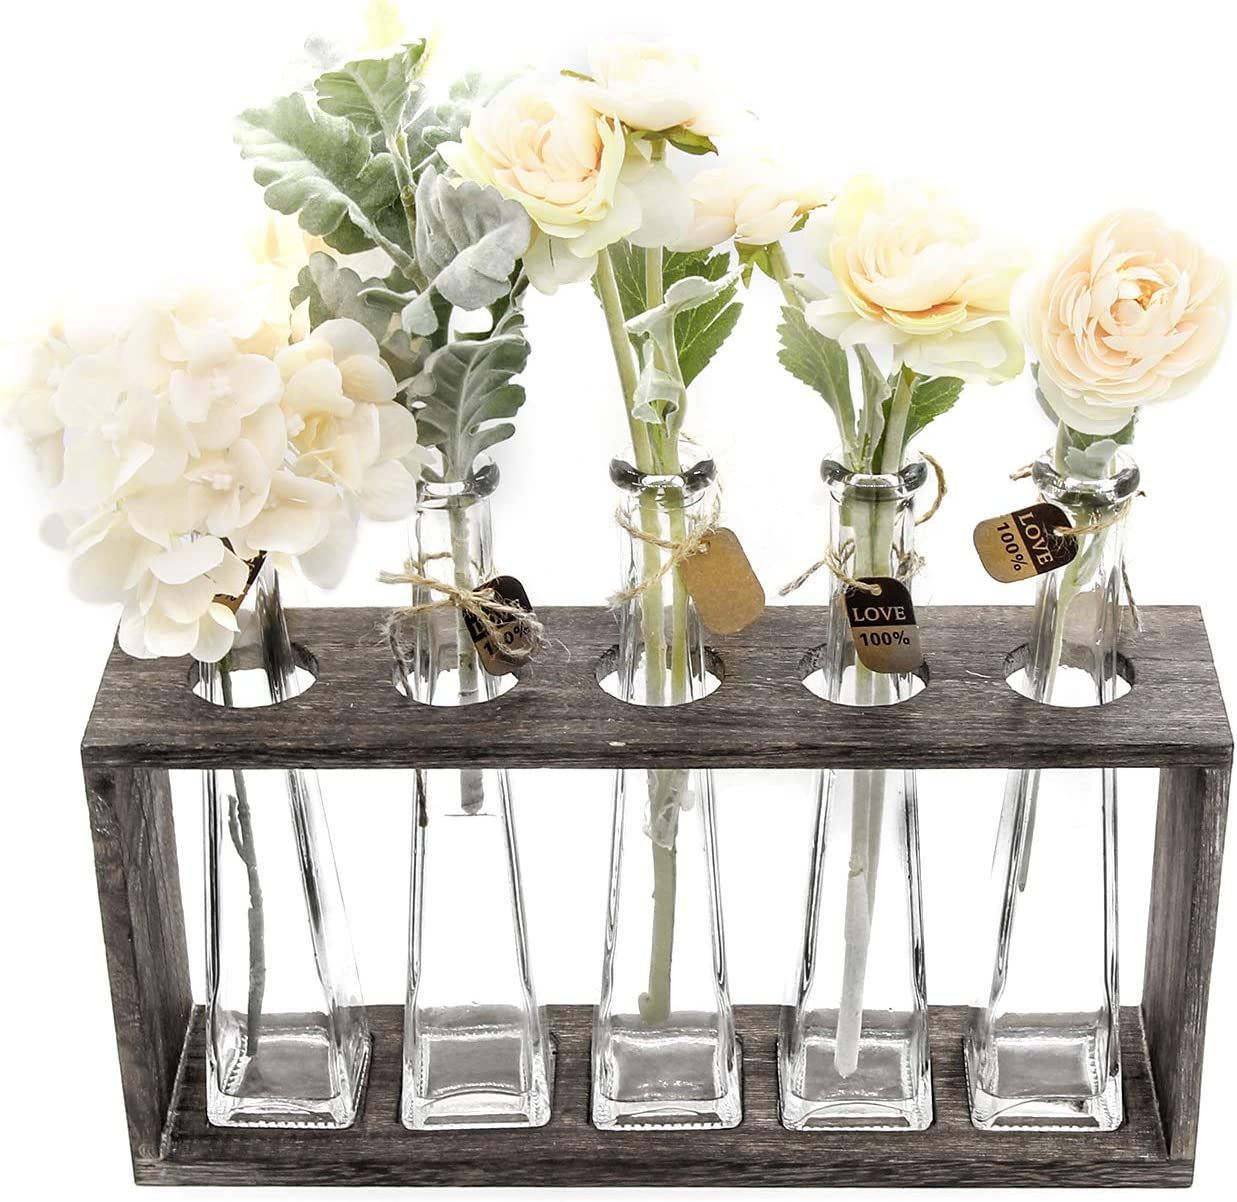 Vases Funsoba Small Glass Vases In Wood Rack Stand Window Sill Display Set Of 3 Crystal Clear Flower Vase Farmhouse Home Decoration White 3 Vase Home Kitchen